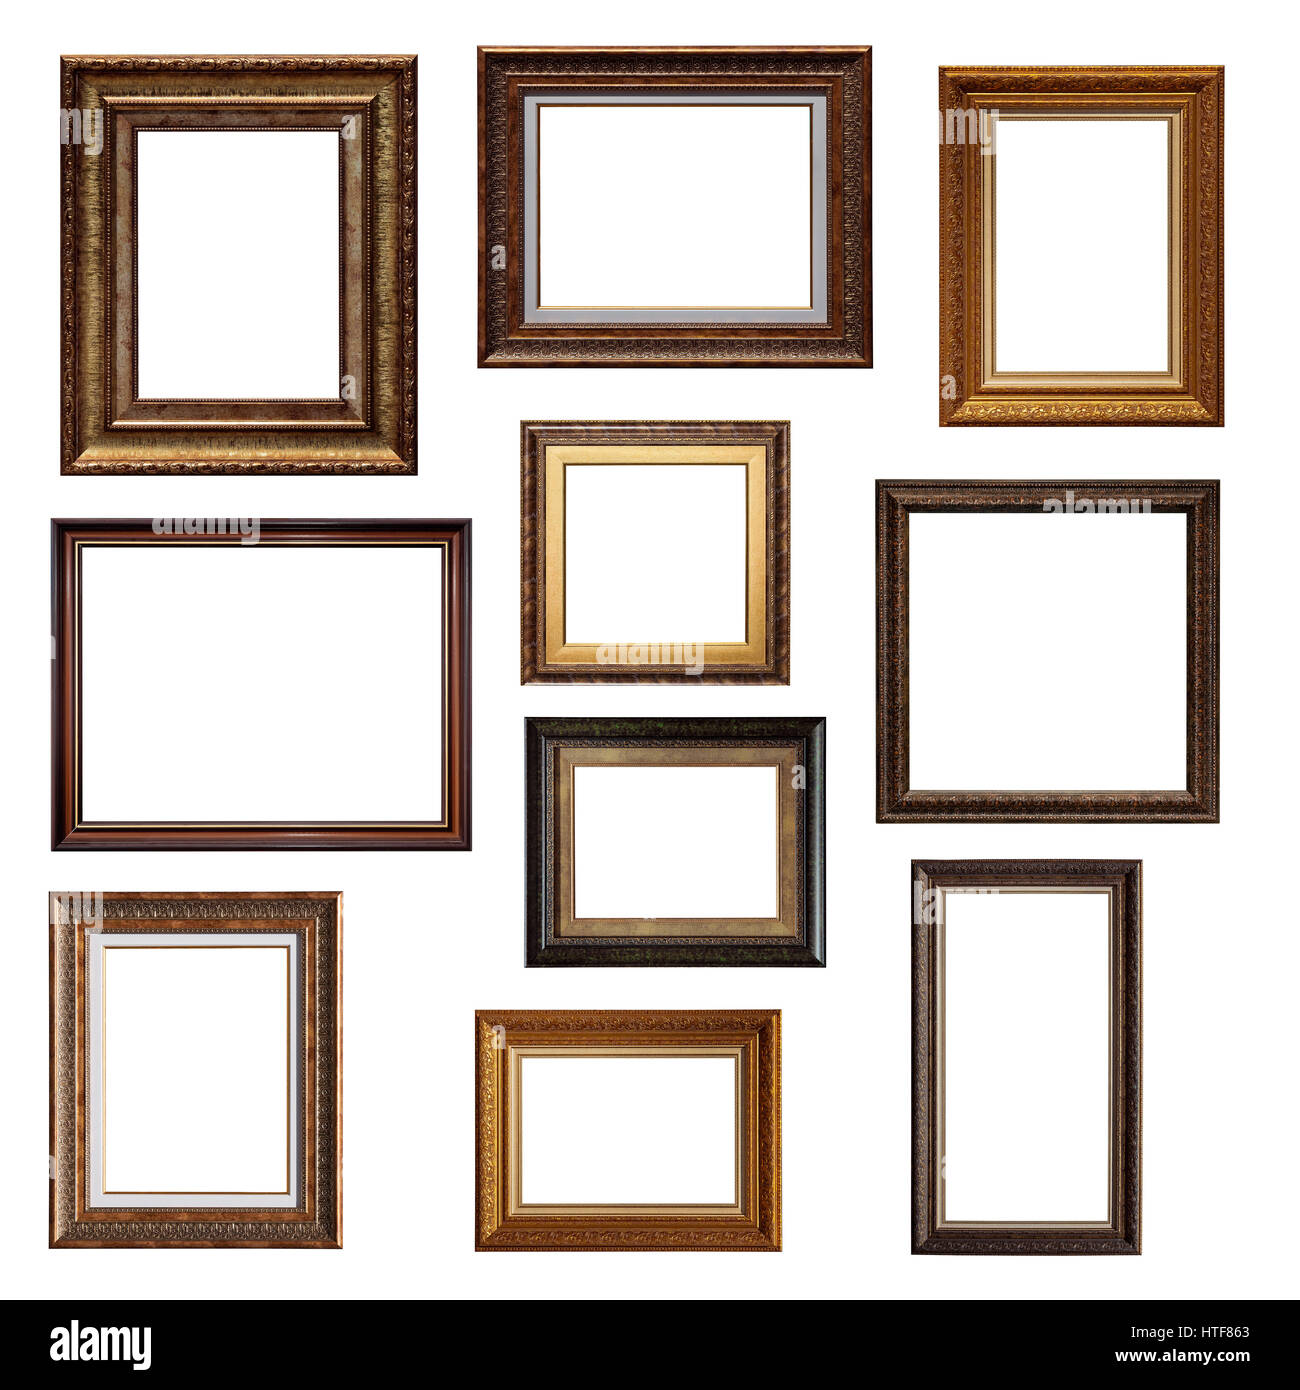 Picture Frames Stockfotos & Picture Frames Bilder - Alamy